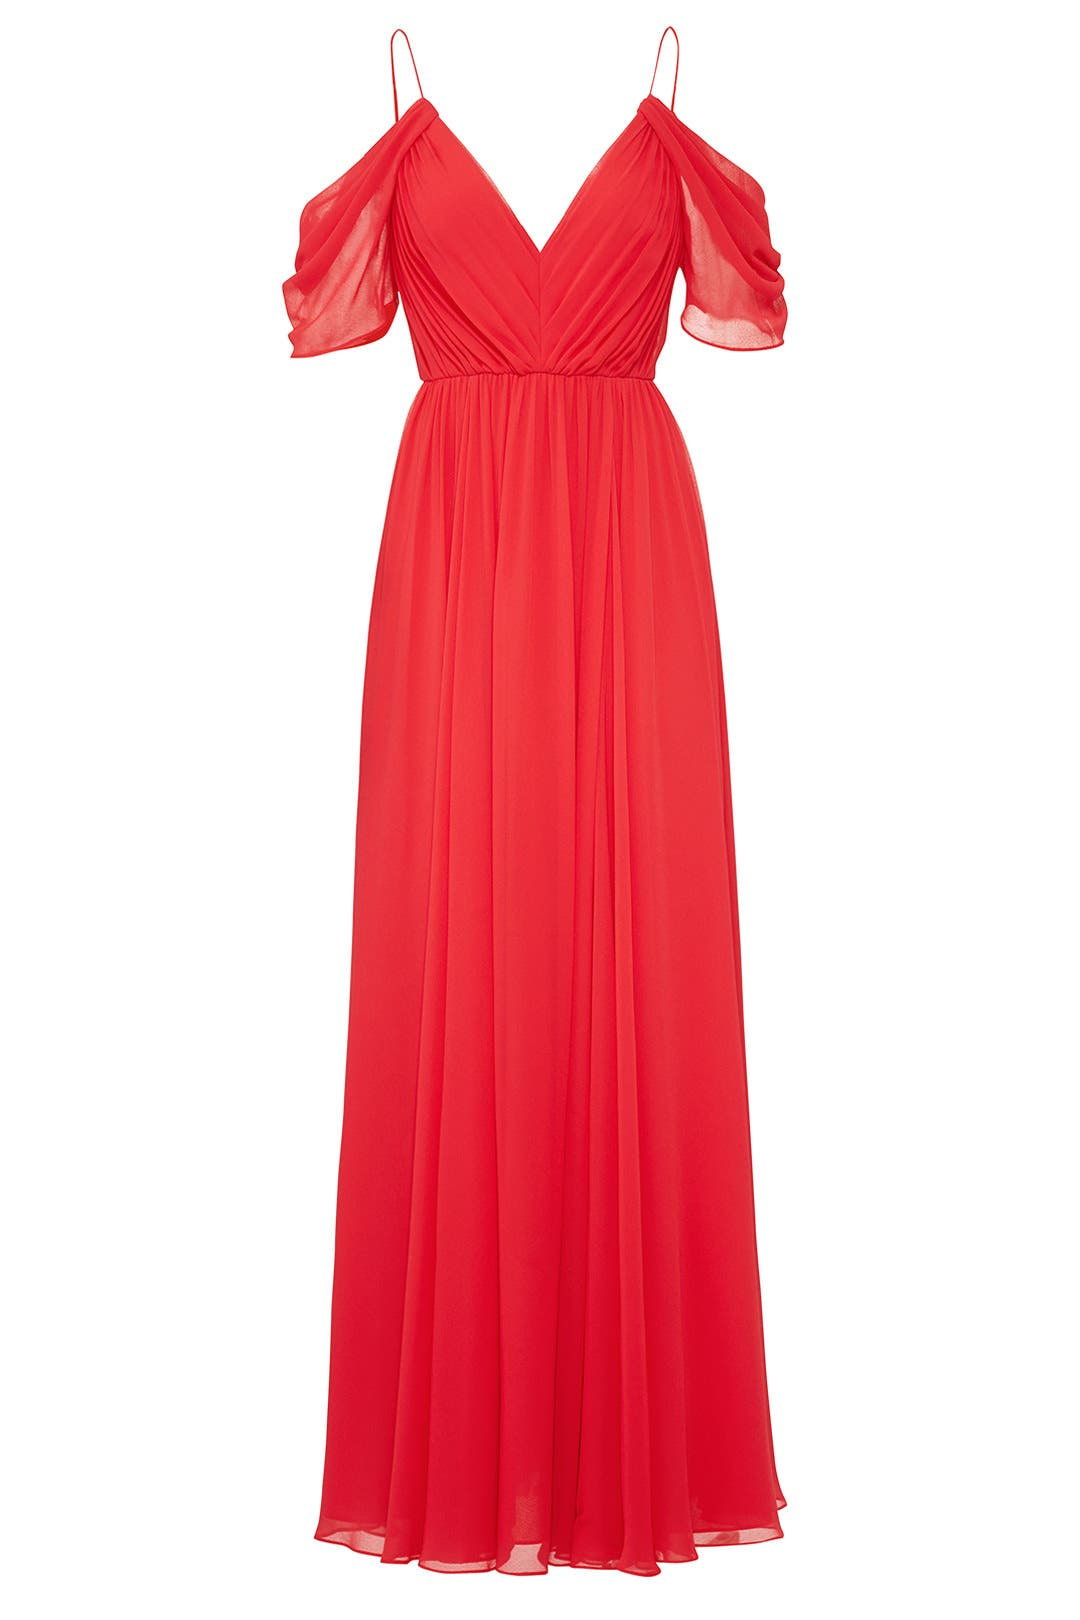 sending wedding invitations months before%0A Red Cold Shoulder Gown by Badgley Mischka for              Rent the Runway